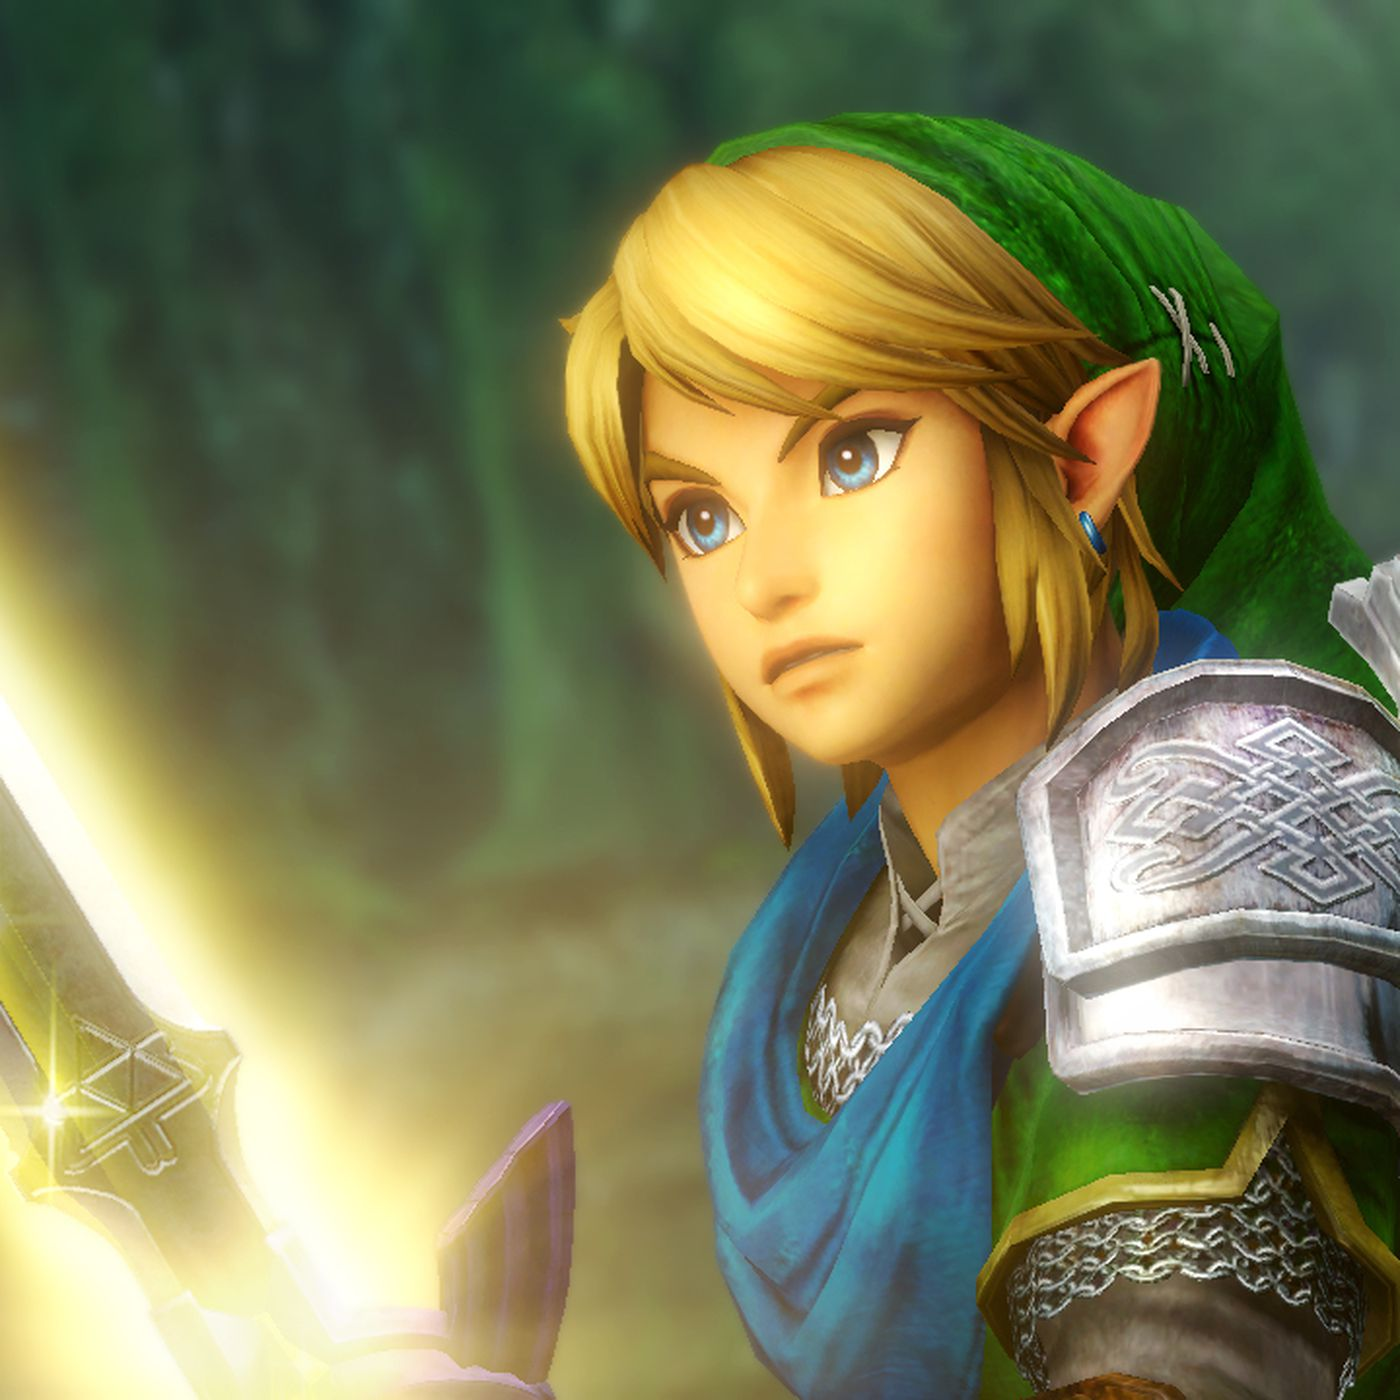 There S A New Zelda Game But It S Not What You Re Thinking The Verge